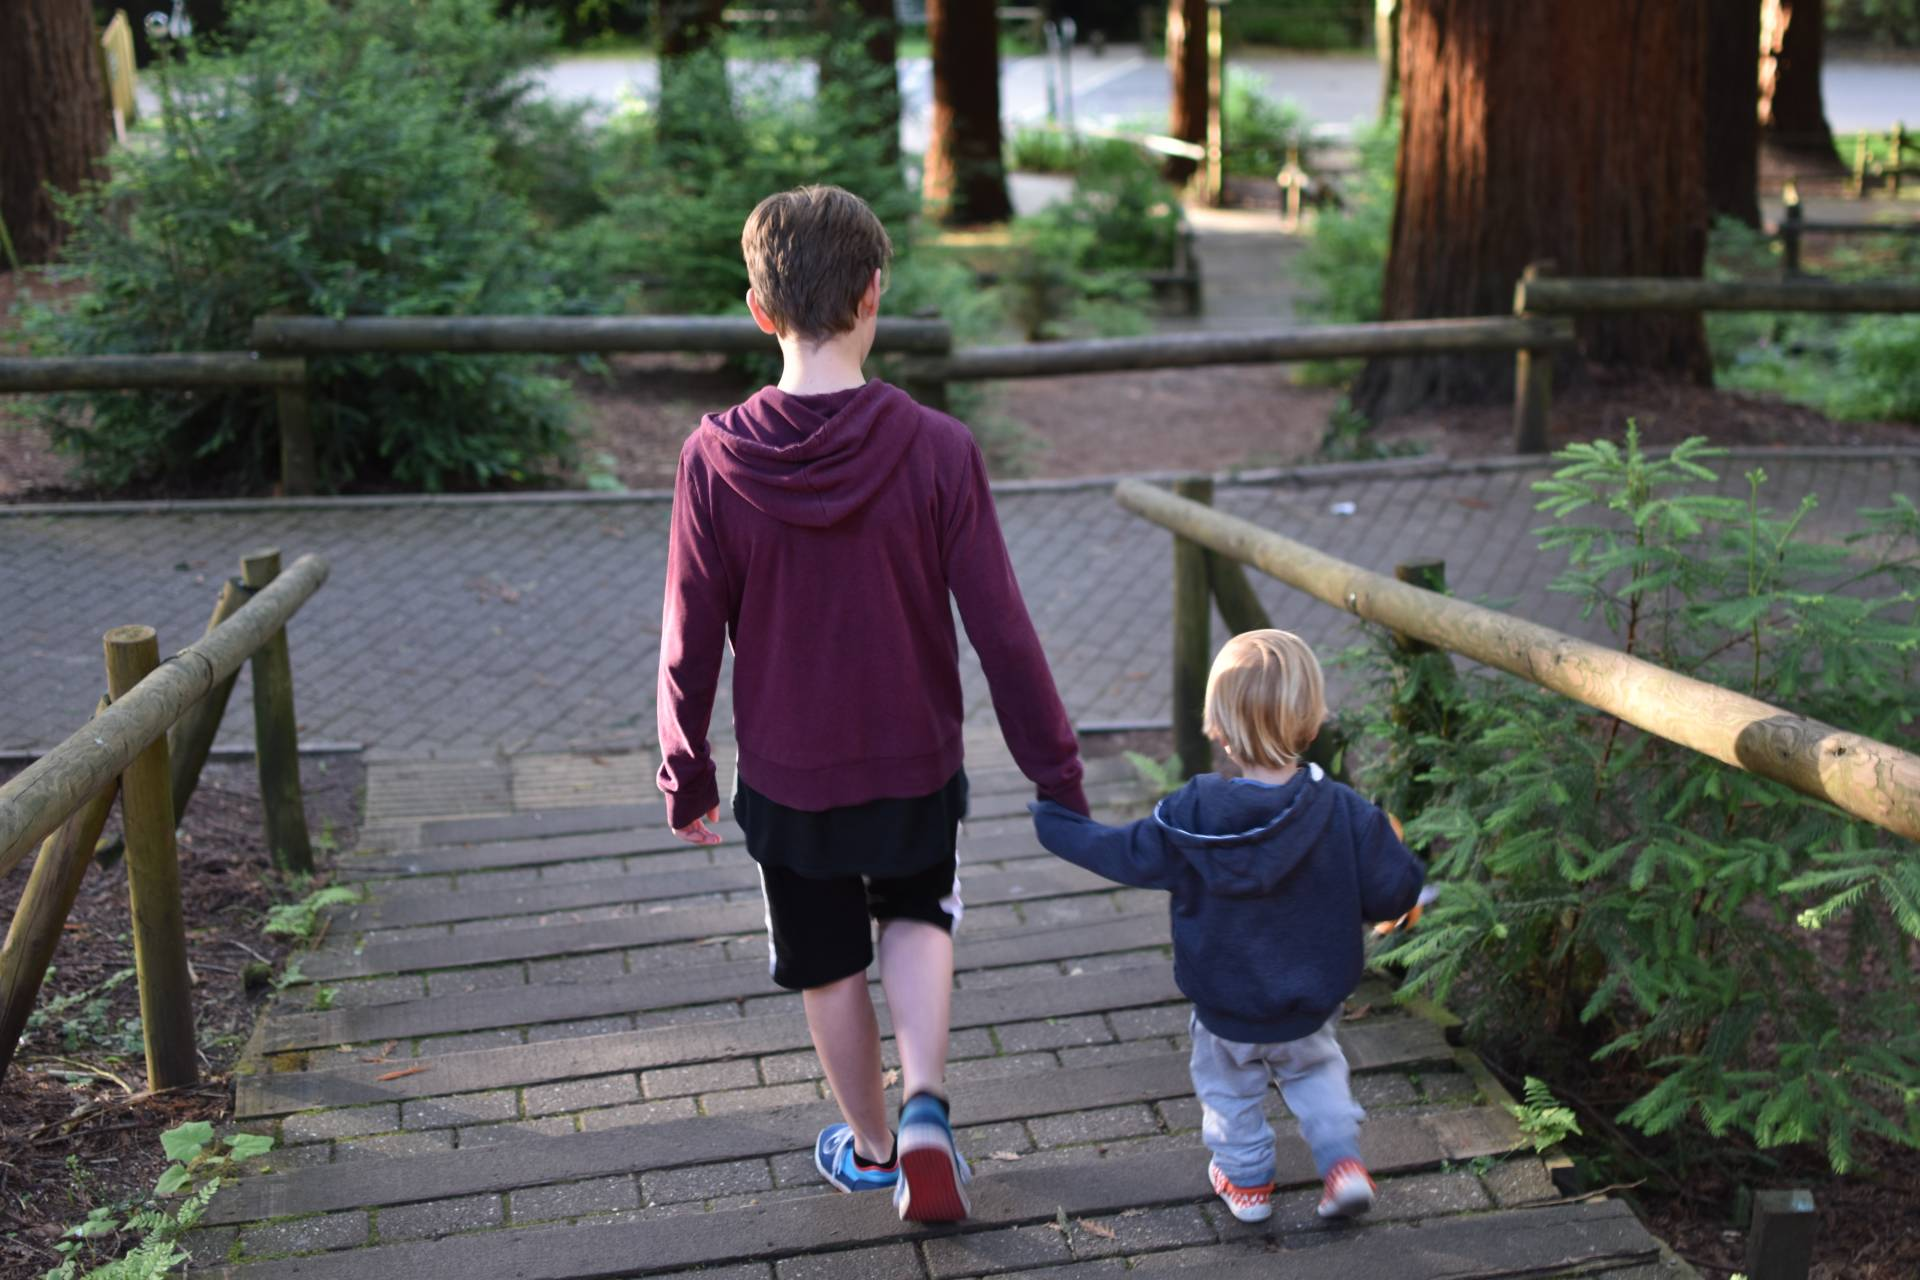 we've been visiting Center Parcs for many years now, so I've put together some tips on how you can plan a break on a budget